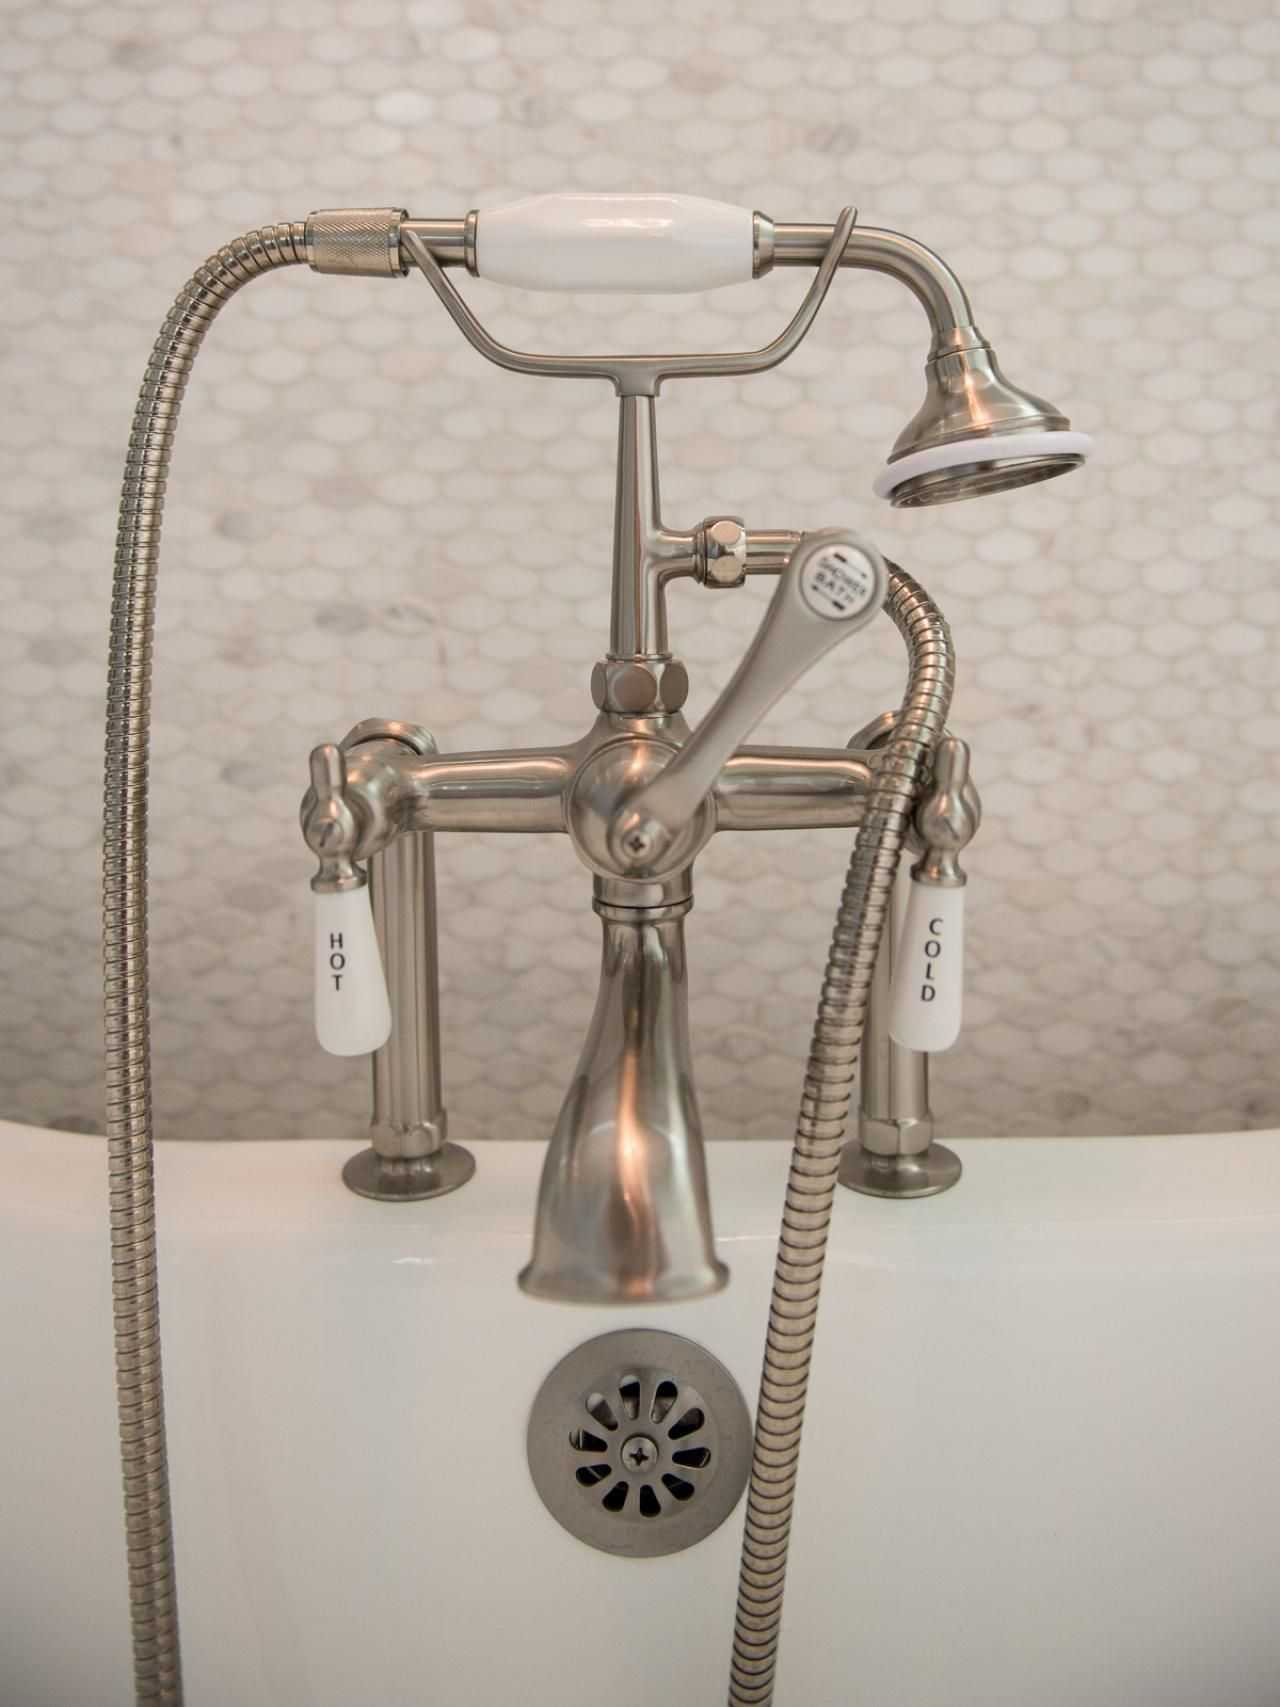 This traditional bathtub faucet also features a handheld shower ...